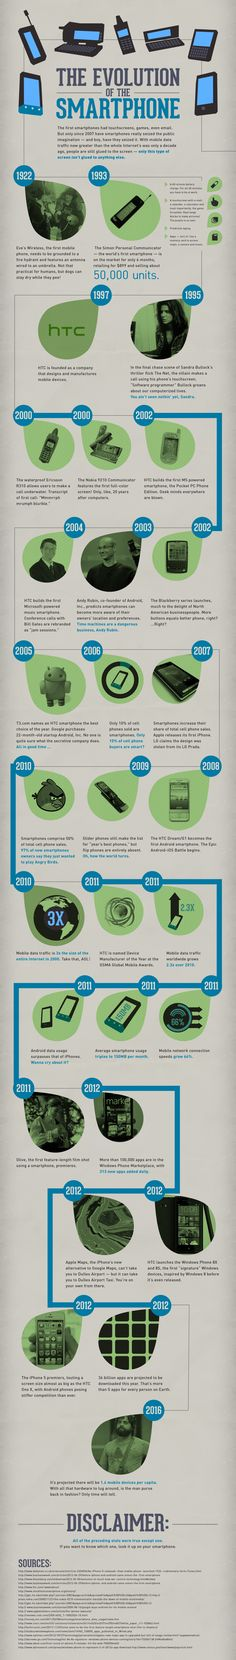 The Evolution Of The Smartphone [#Infographic]